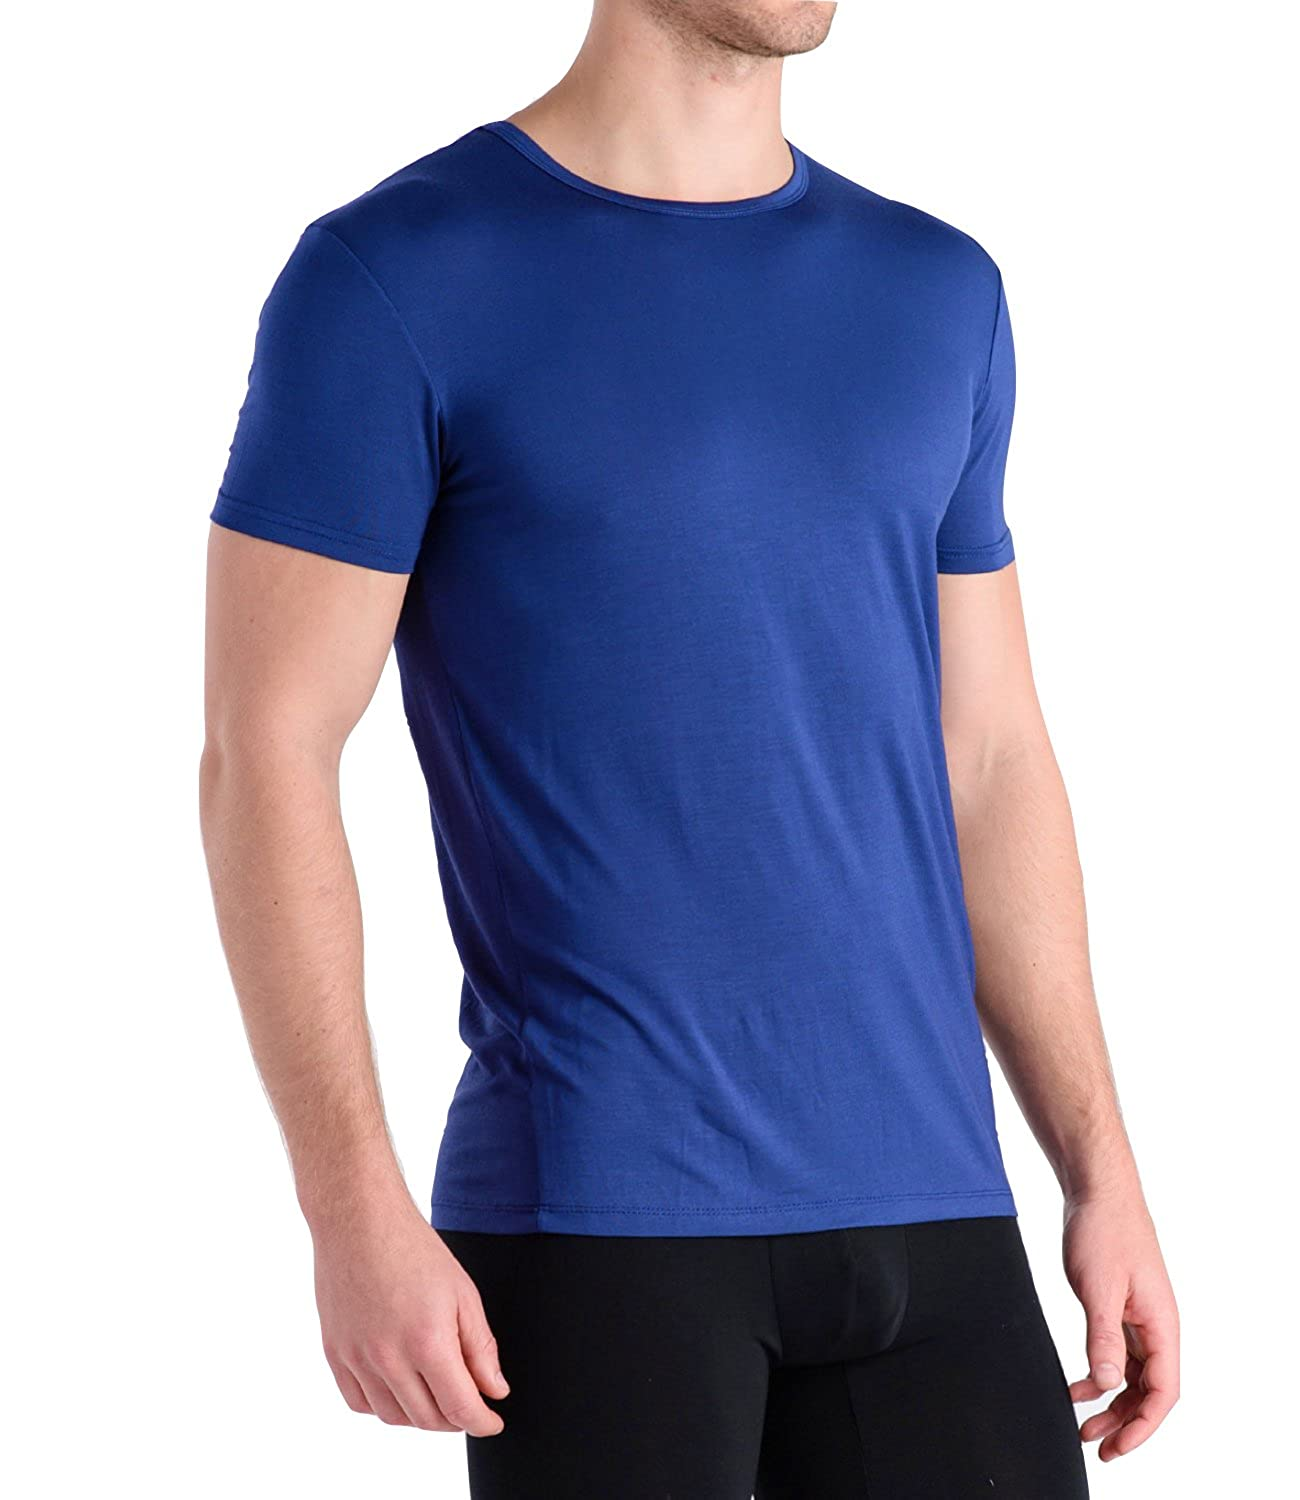 130858bd1ec3 TWICE AS SOFT AS COTTON  Breathable modal micro fiber undershirts for men  that are as smooth   soft as possible